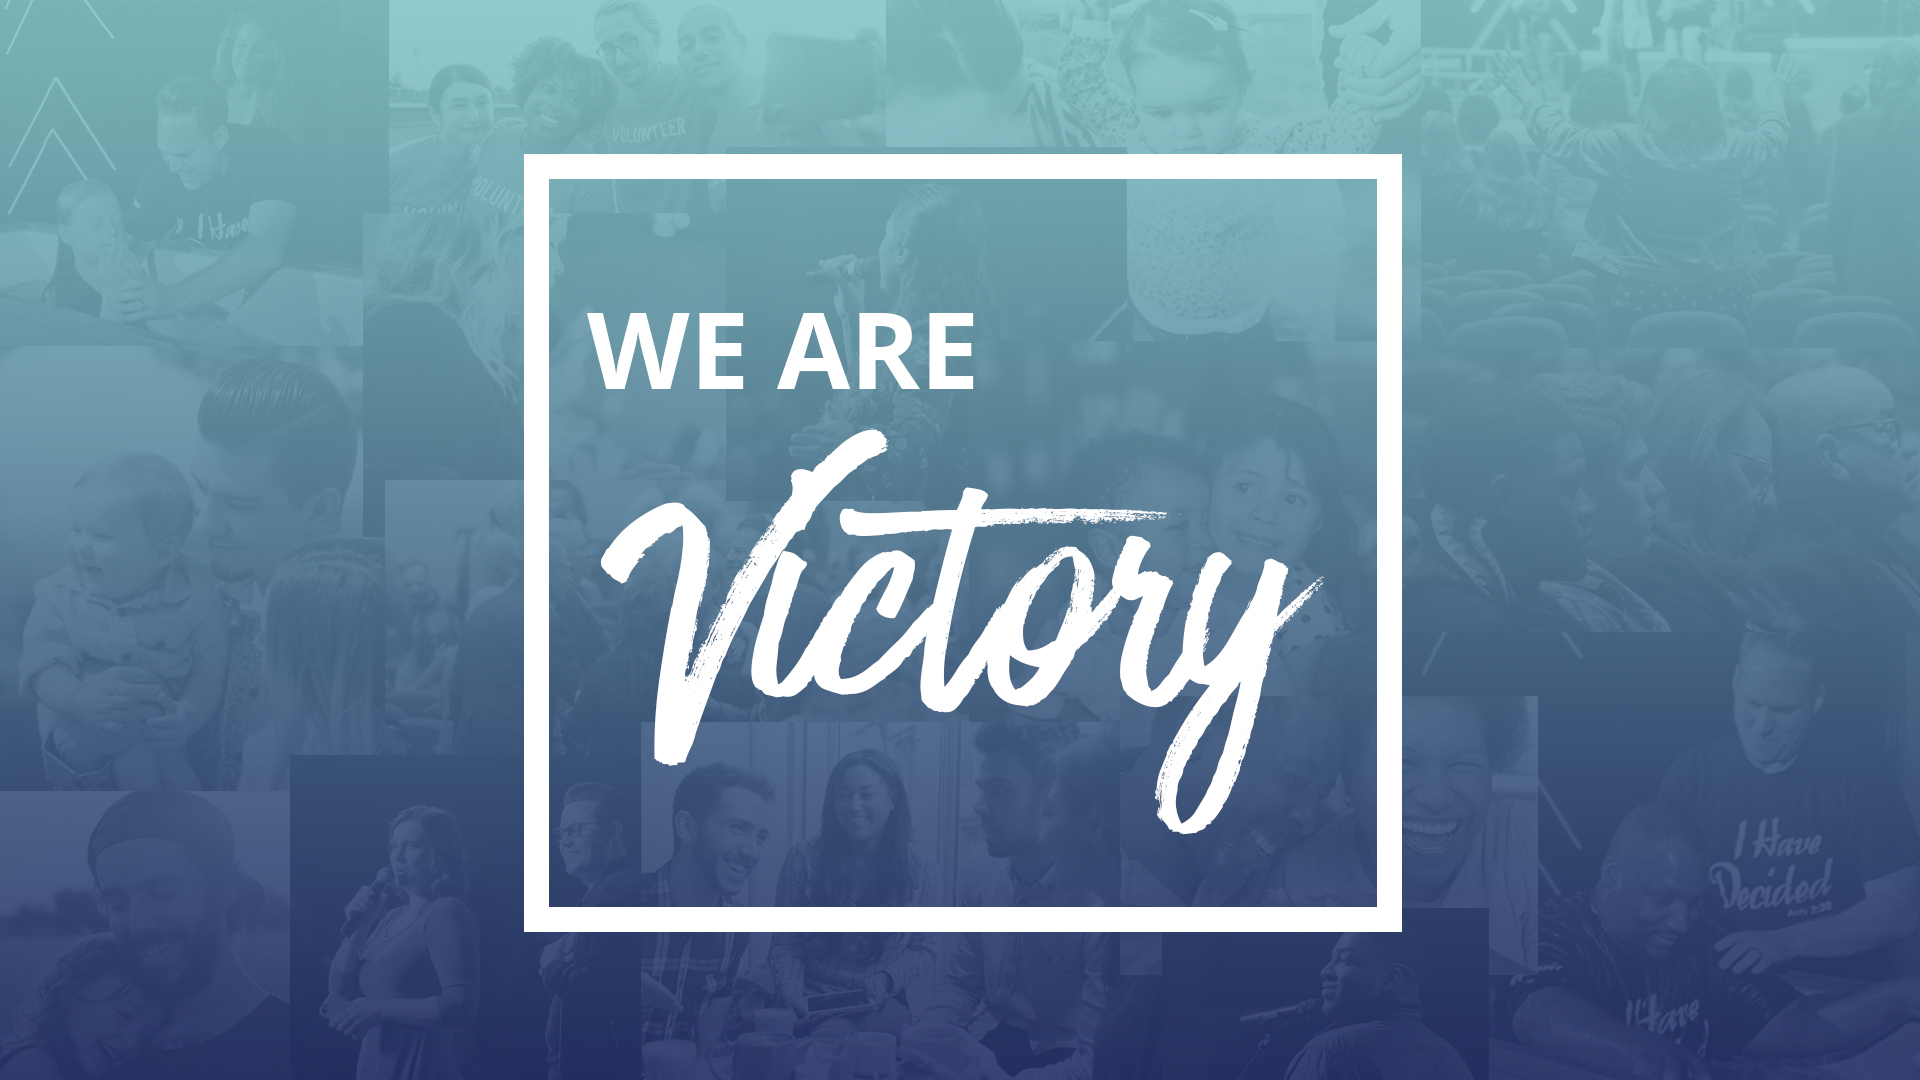 We Are Victory (1).jpg